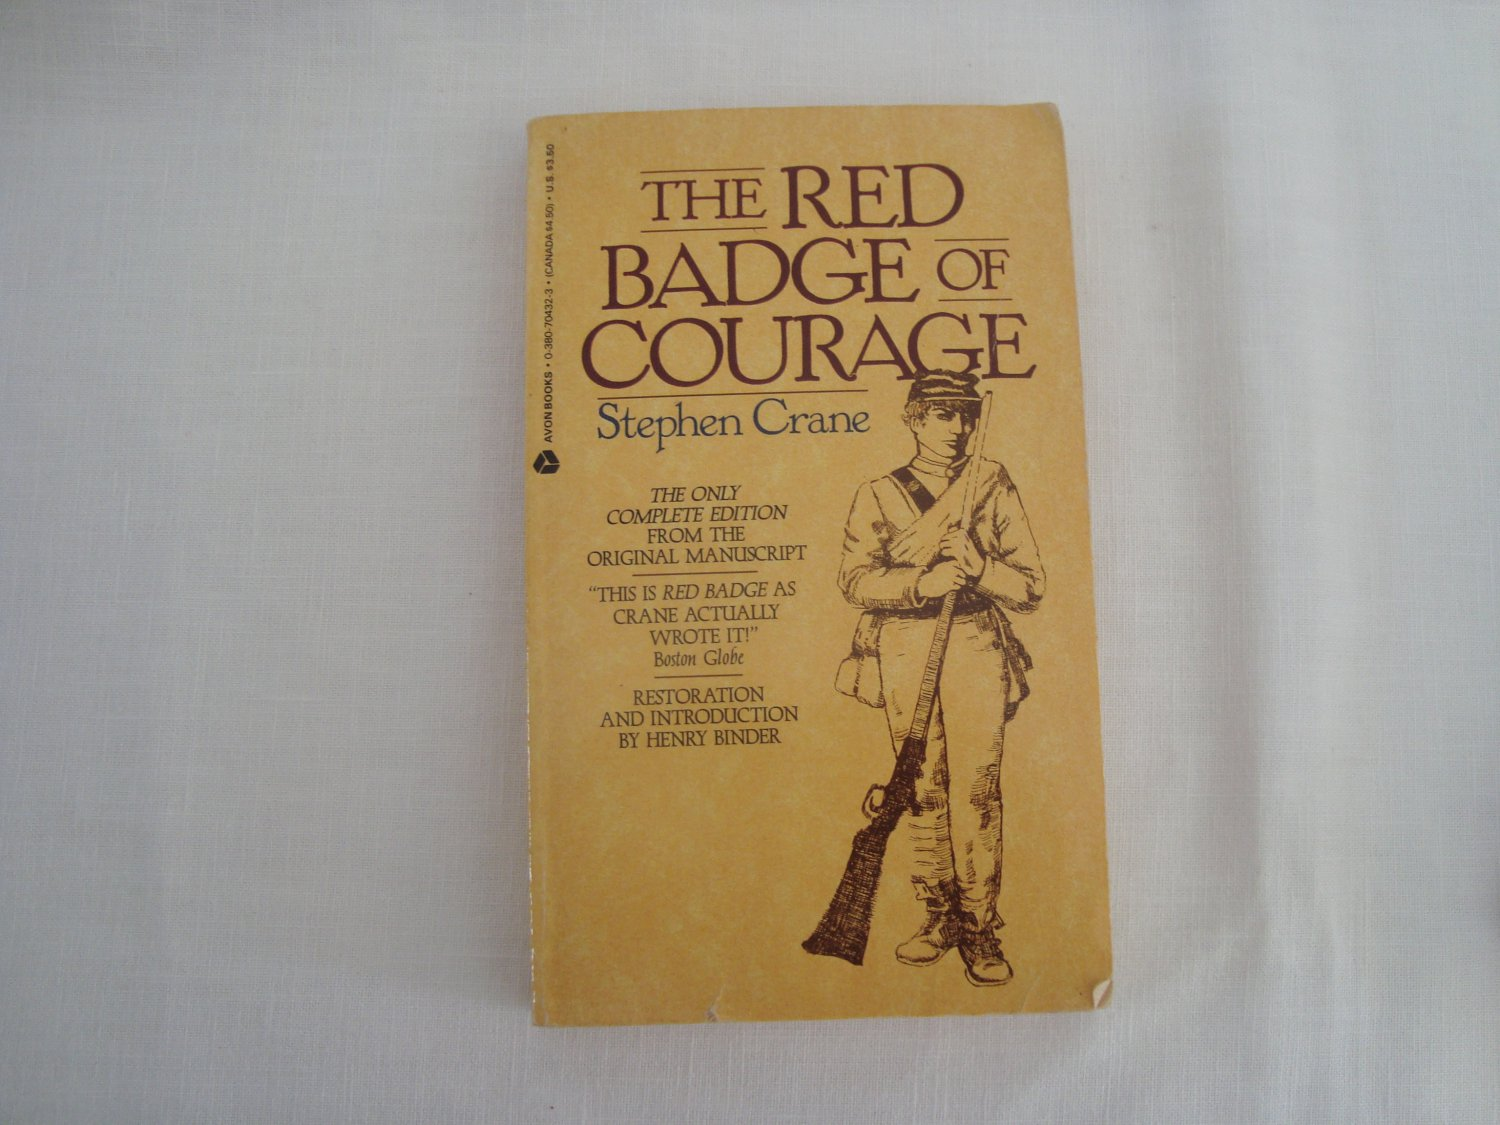 an analysis of the red badge of courage by stephen crane The red badge of courage is the the red badge of courage stephen crane buy book summary table of contents  all subjects book summary about the red badge.